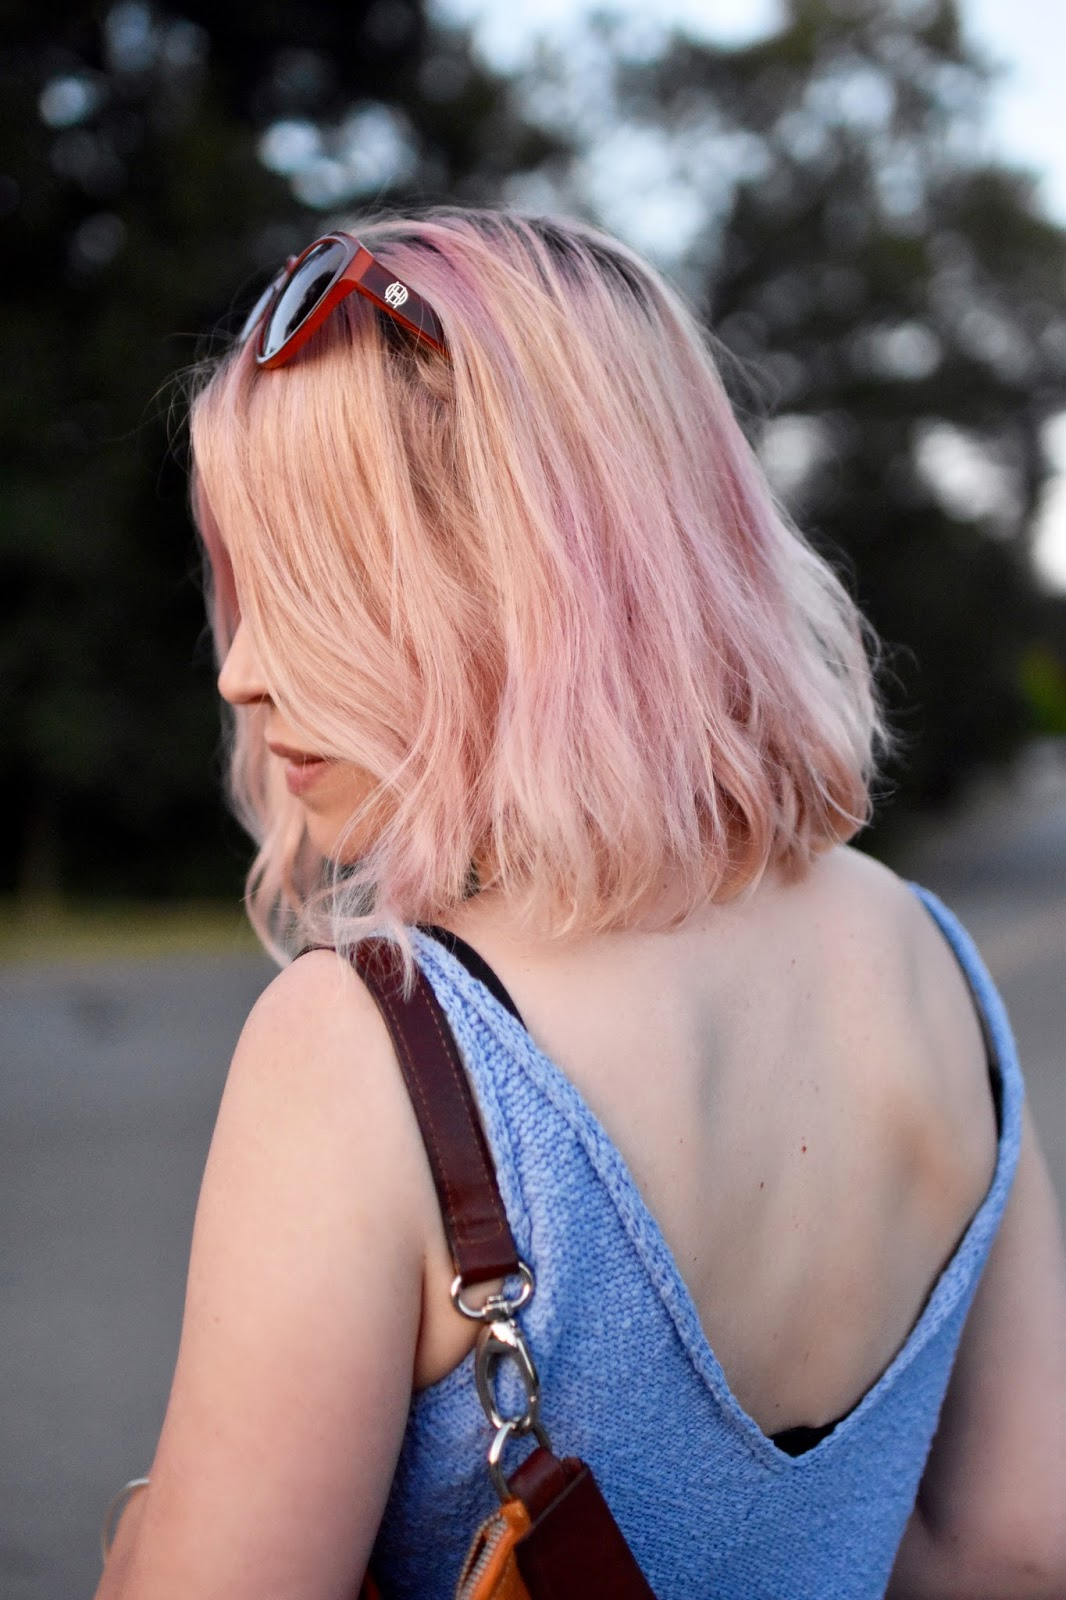 Monika Faulkner personal style inspiration - pink hair, knit tank top, House of Harlow 1960 sunglasses